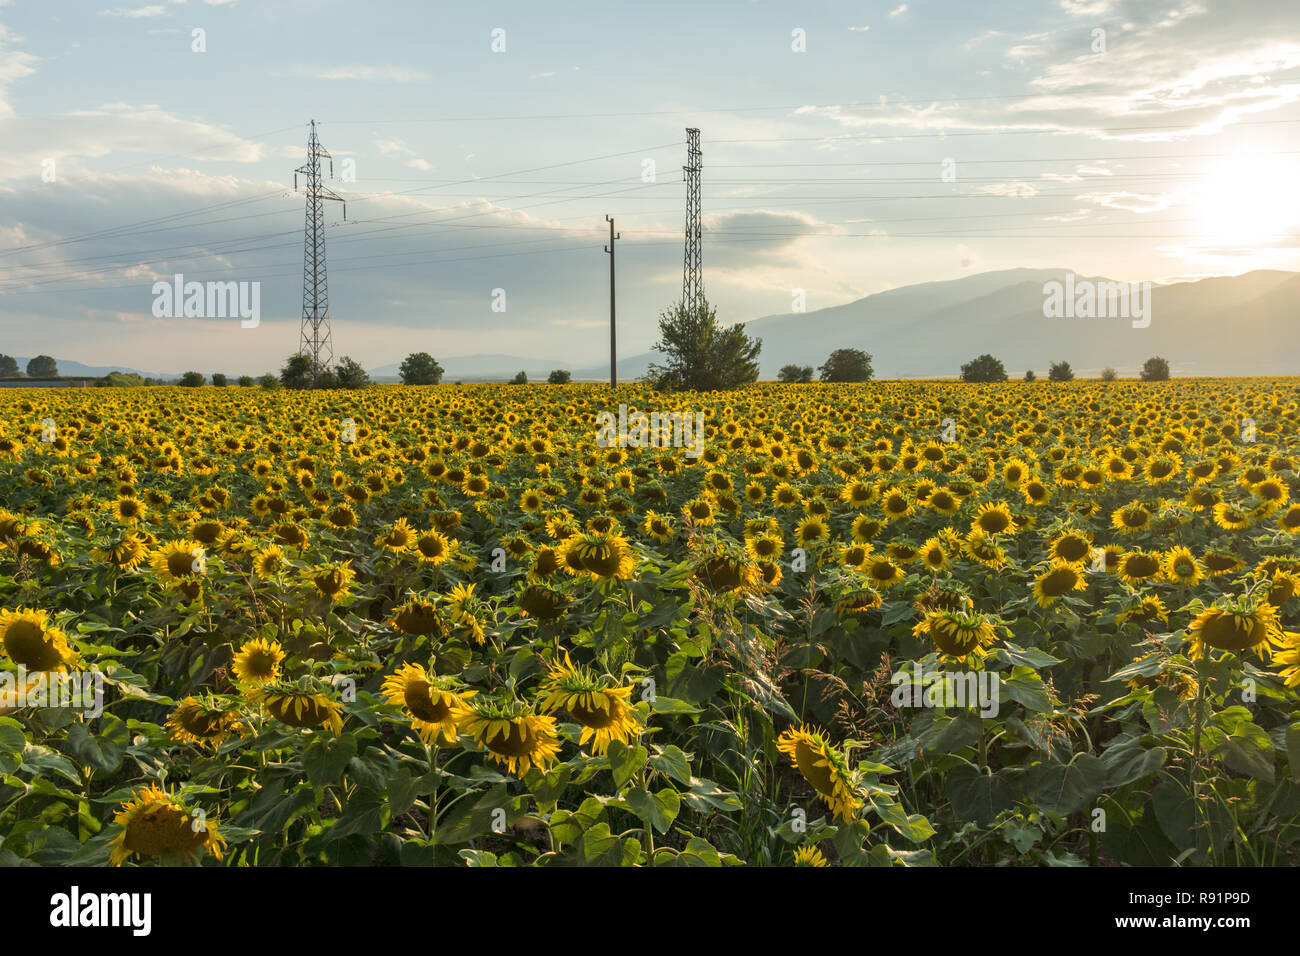 Sunset view of sunflower field at Kazanlak Valley, Stara Zagora Region, Bulgaria - Stock Image